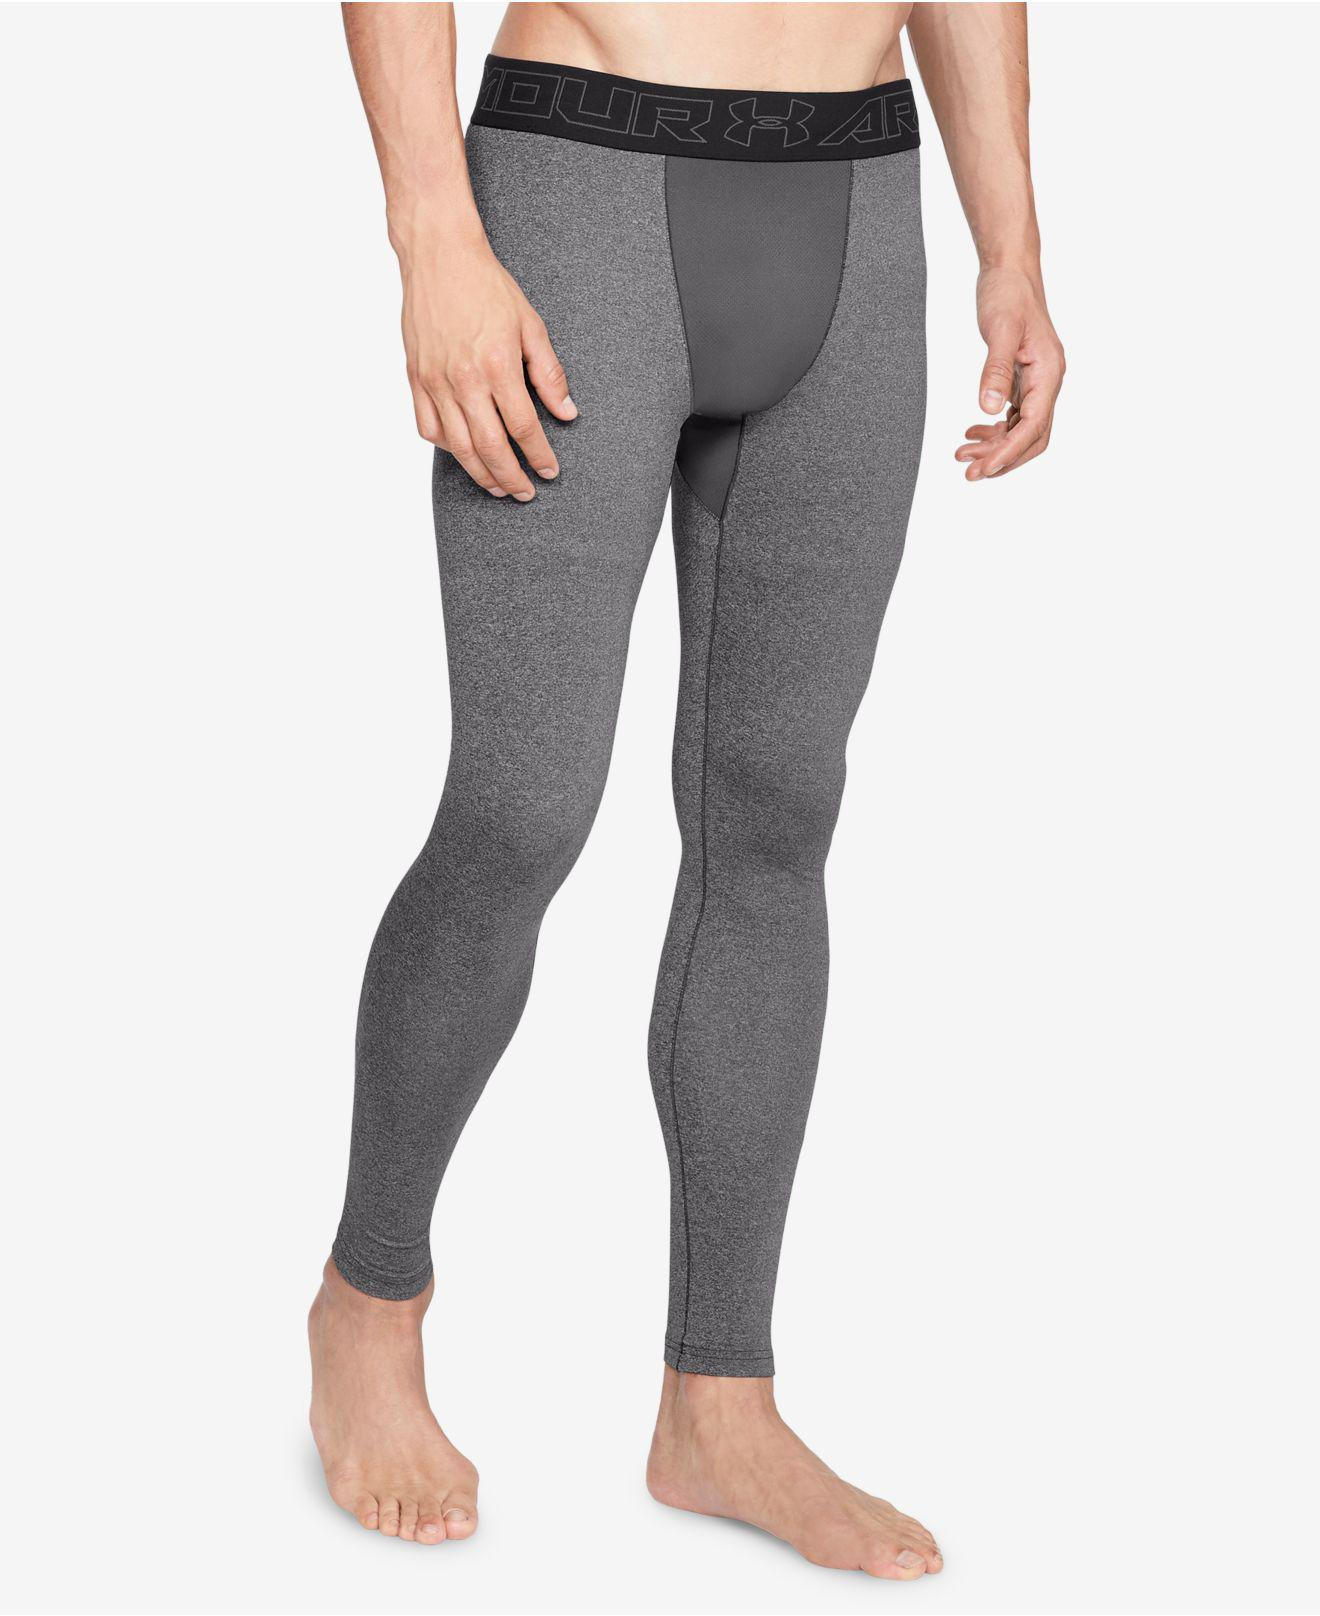 30f46471b0 Lyst - Under Armour Coldgear in Gray for Men